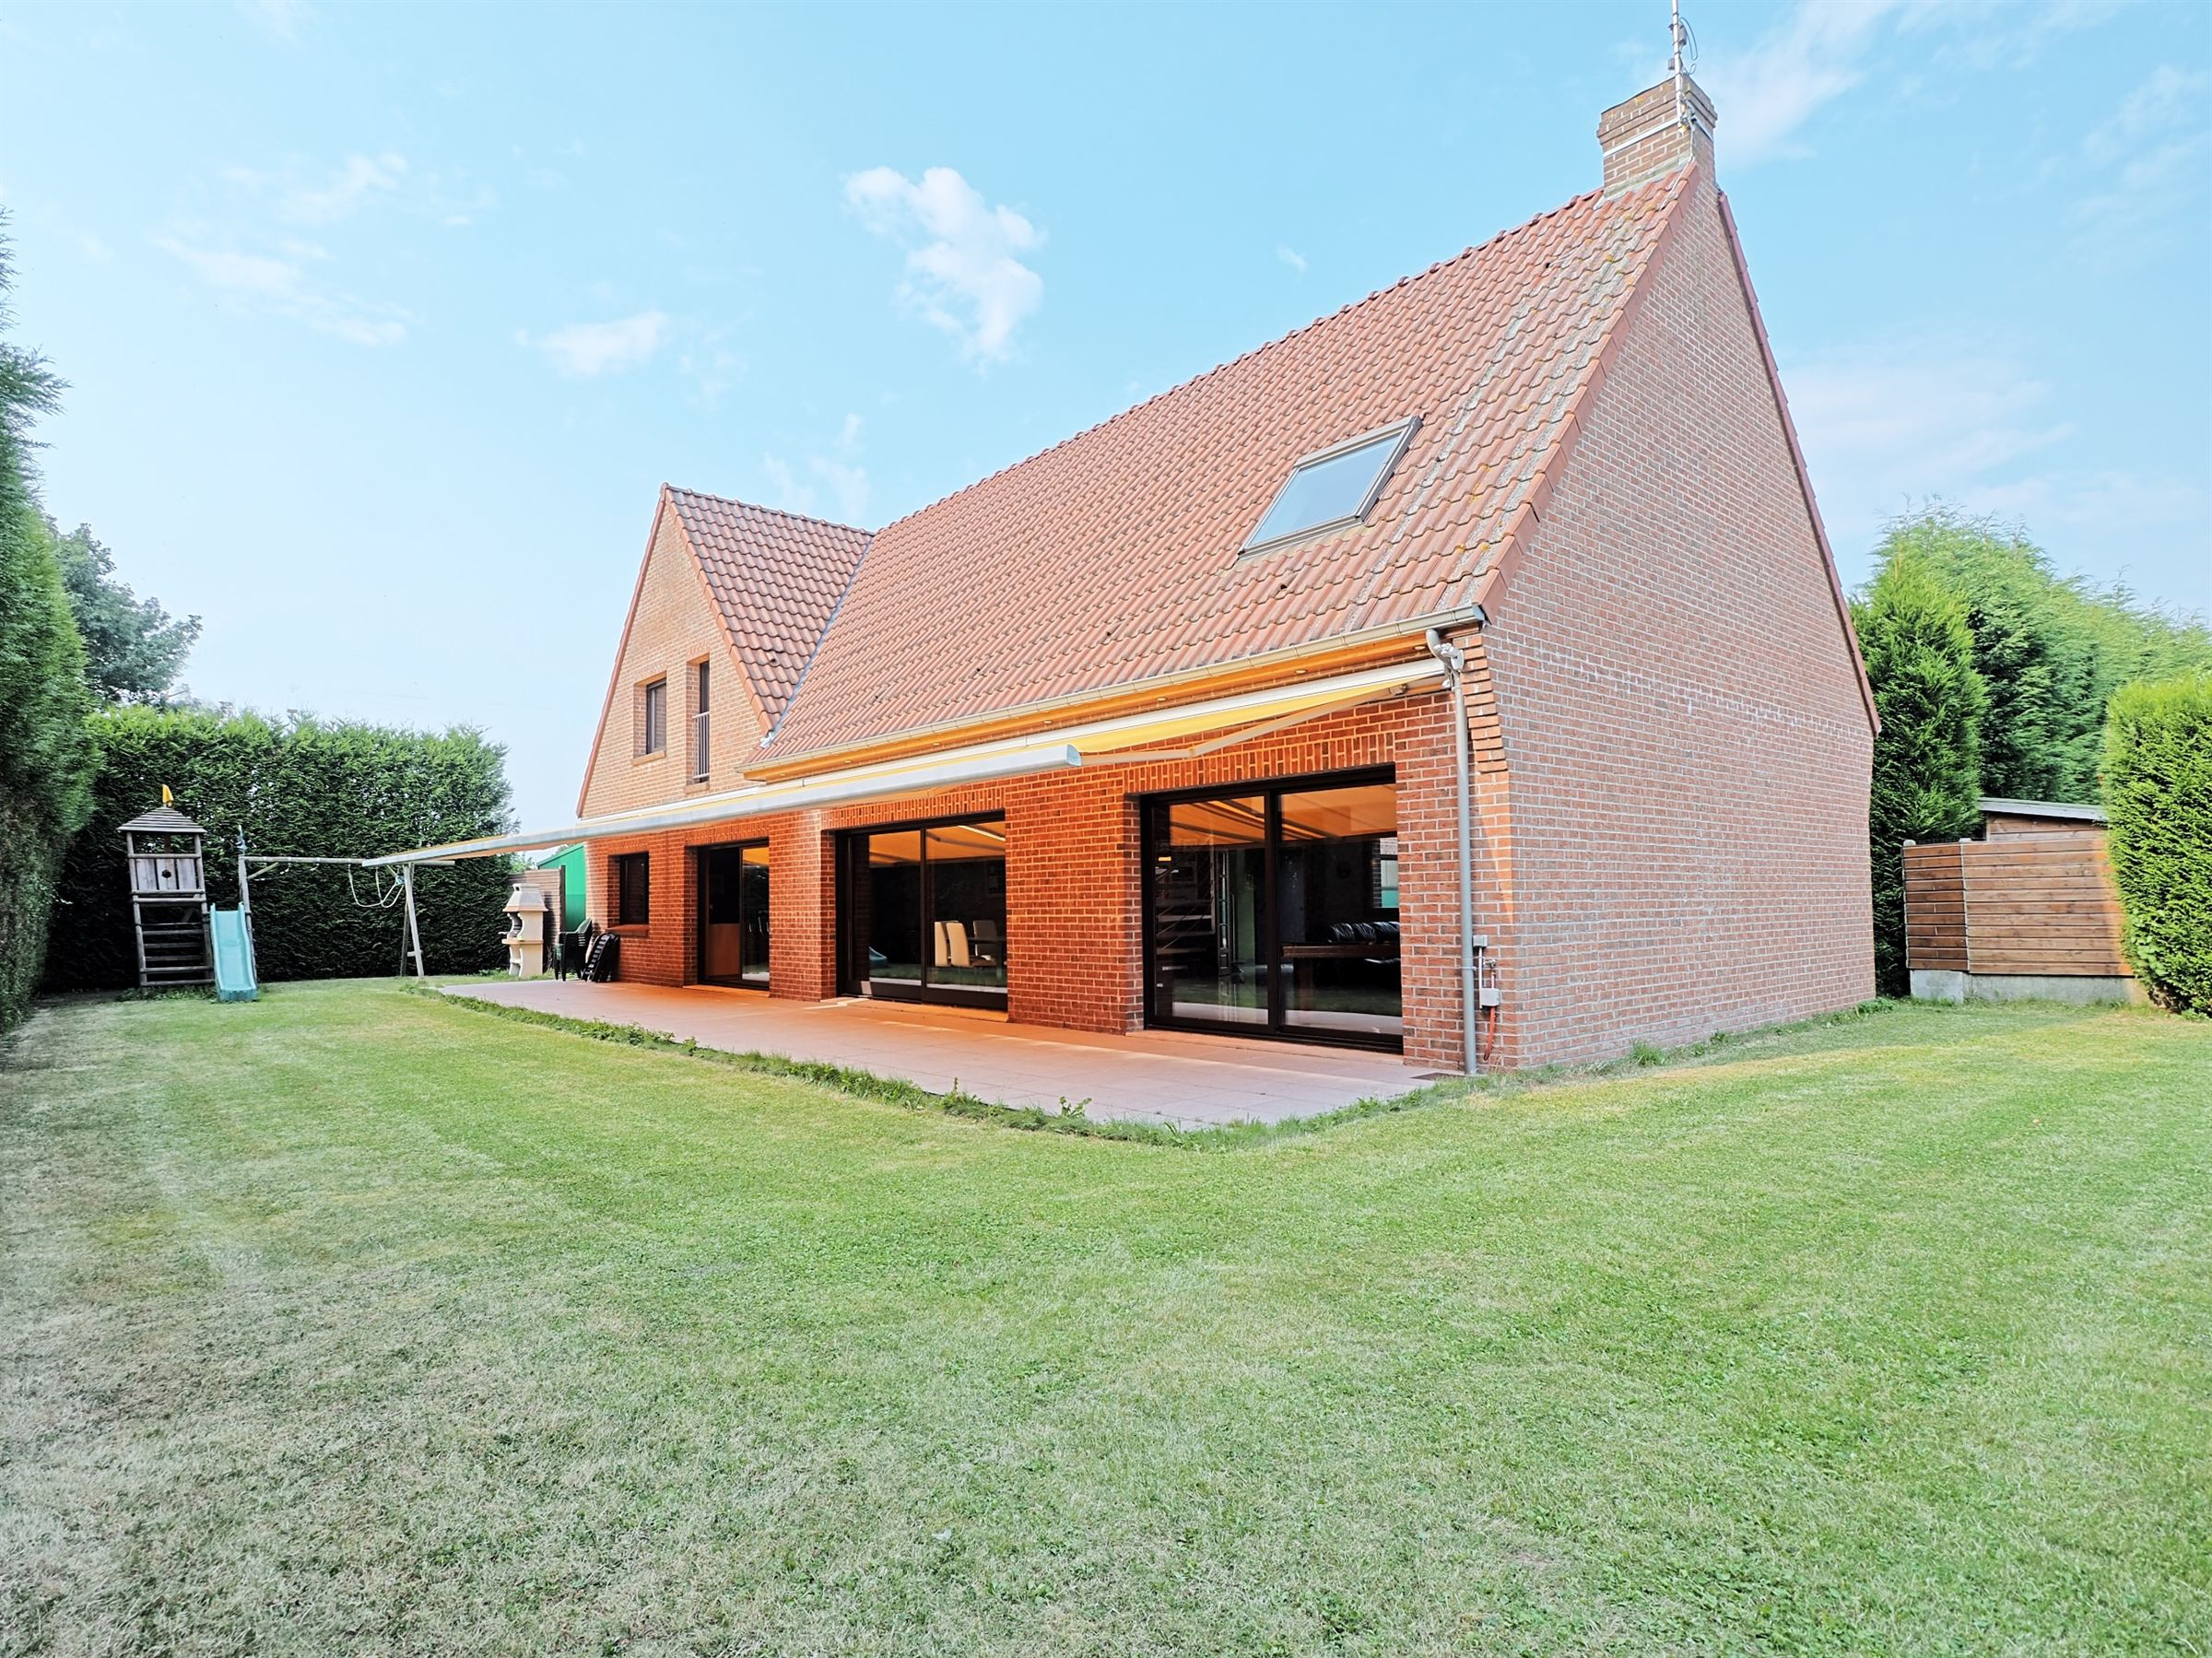 sales property at WATTIGNIES, Splendid Villa of 1999, 339 m2 plot of 1400 m2